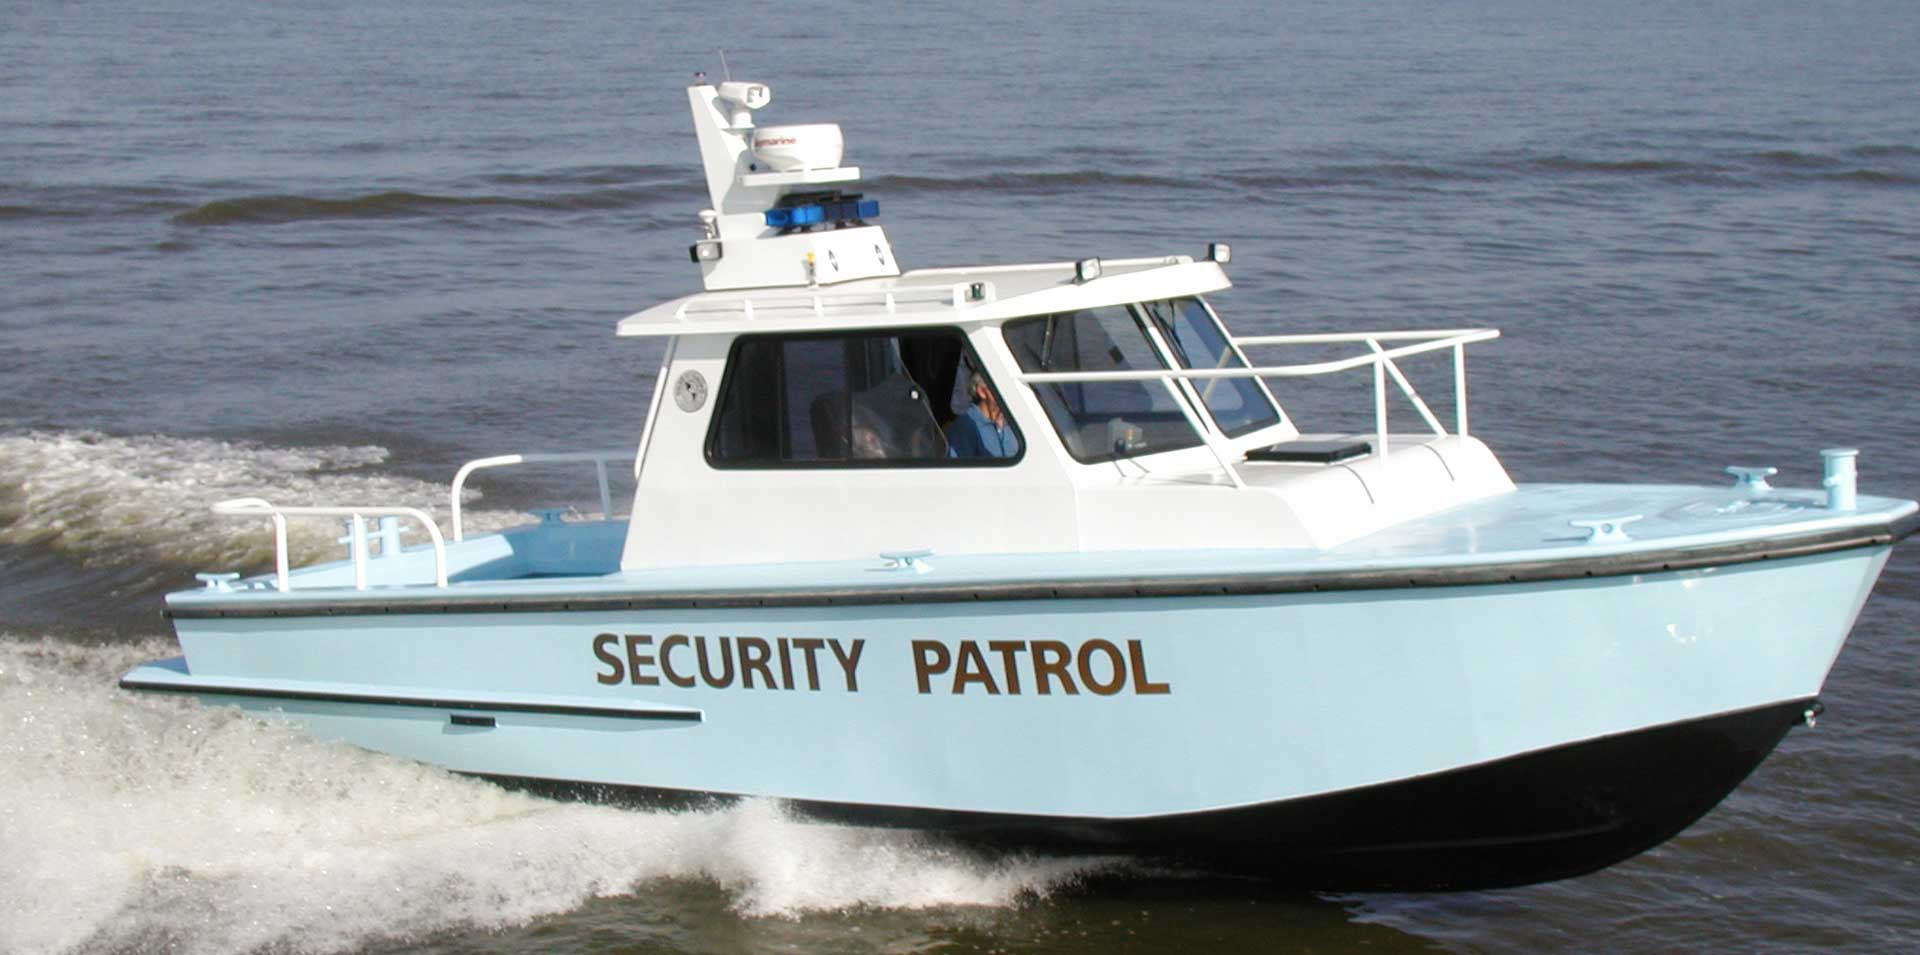 Silver Ships Endeavor Series security patrol boat